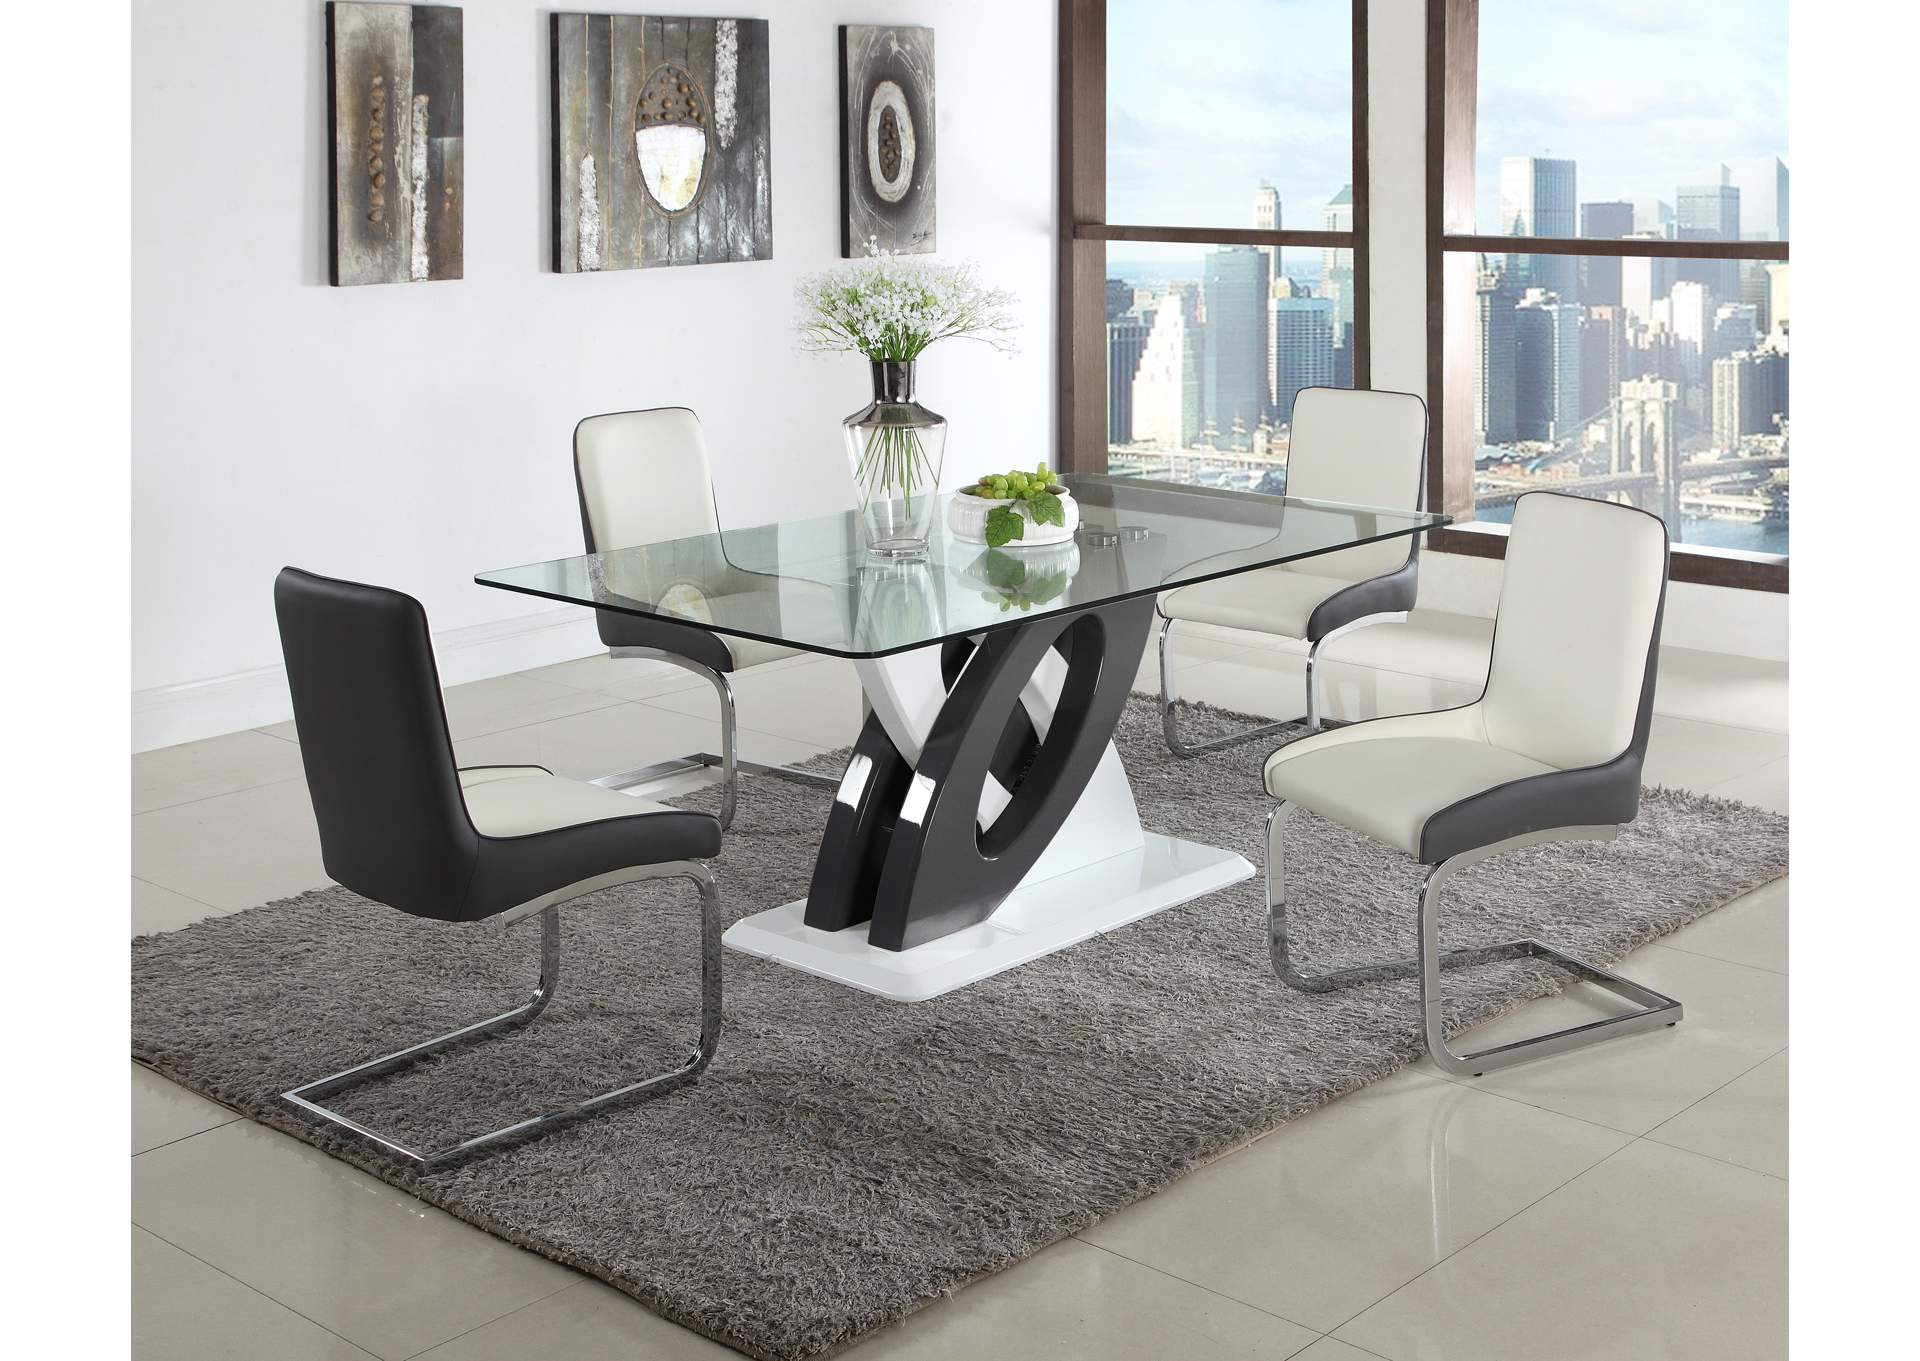 Stella White Modern Glass Top Dining Table,Chintaly Imports